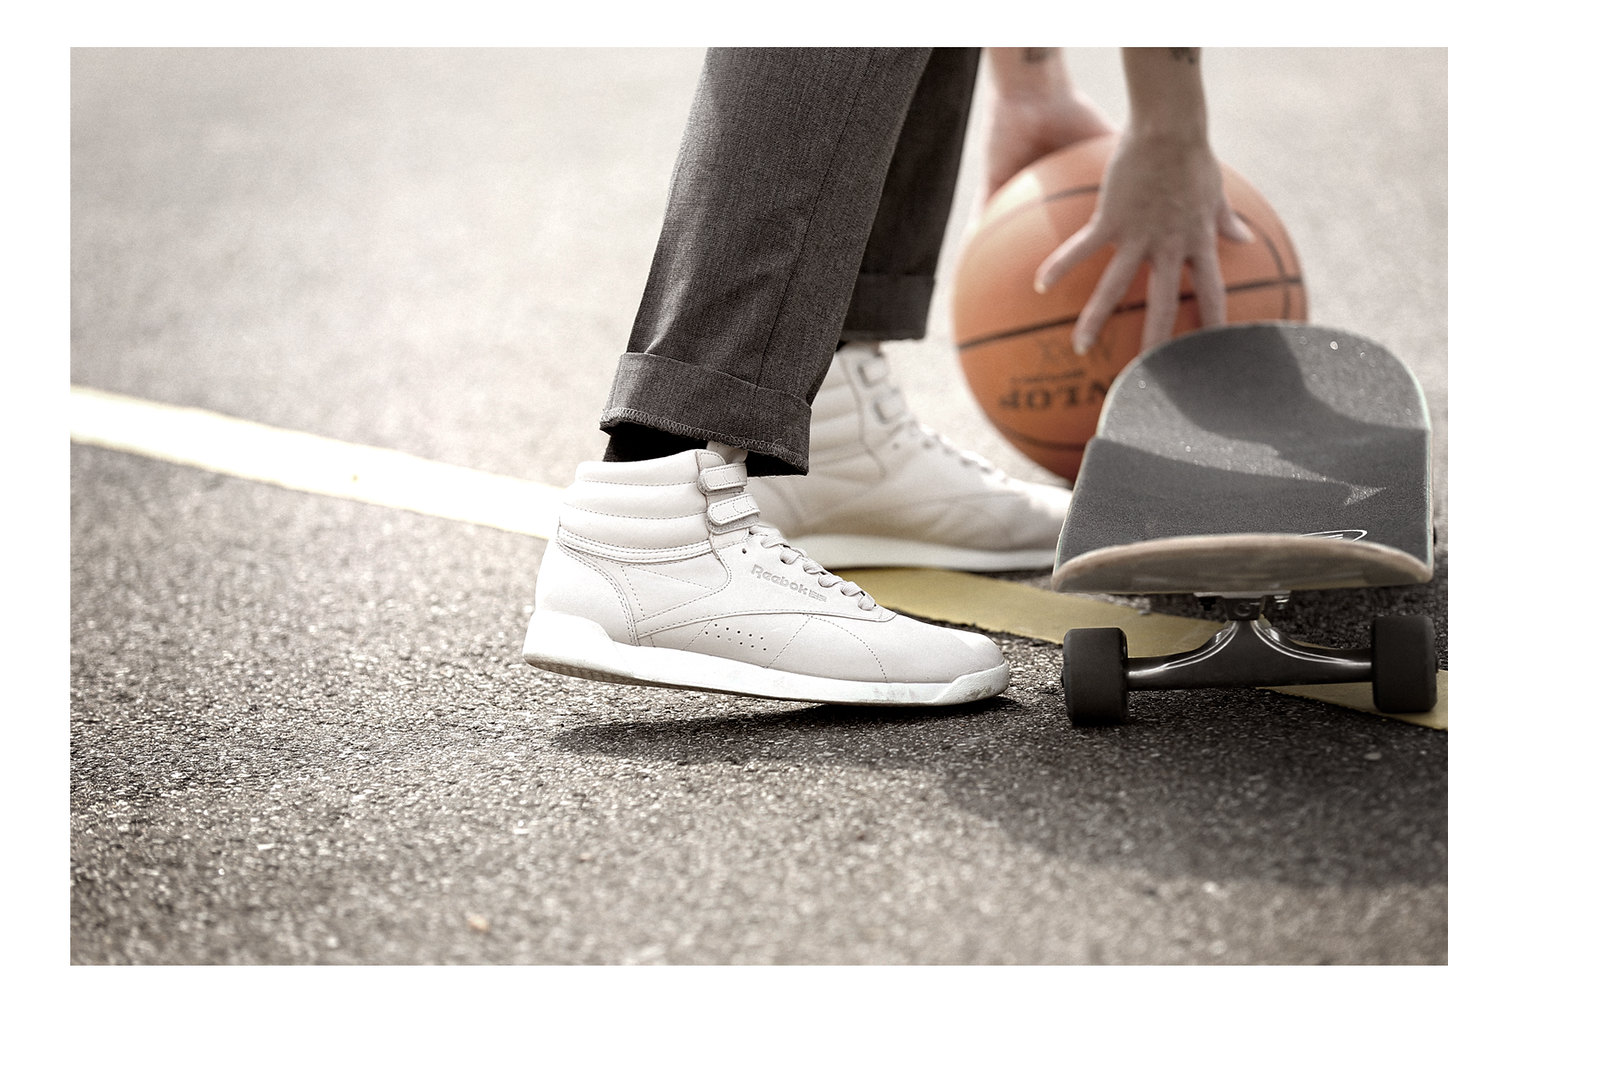 outfit reebok classics face stockholm sneakers hi rise basketball sports skateboard grey suit outfit business casual sporty look lookbook magentaskateboards titus düsseldorf ricarda schernus modeblogger nrw photography playground 4